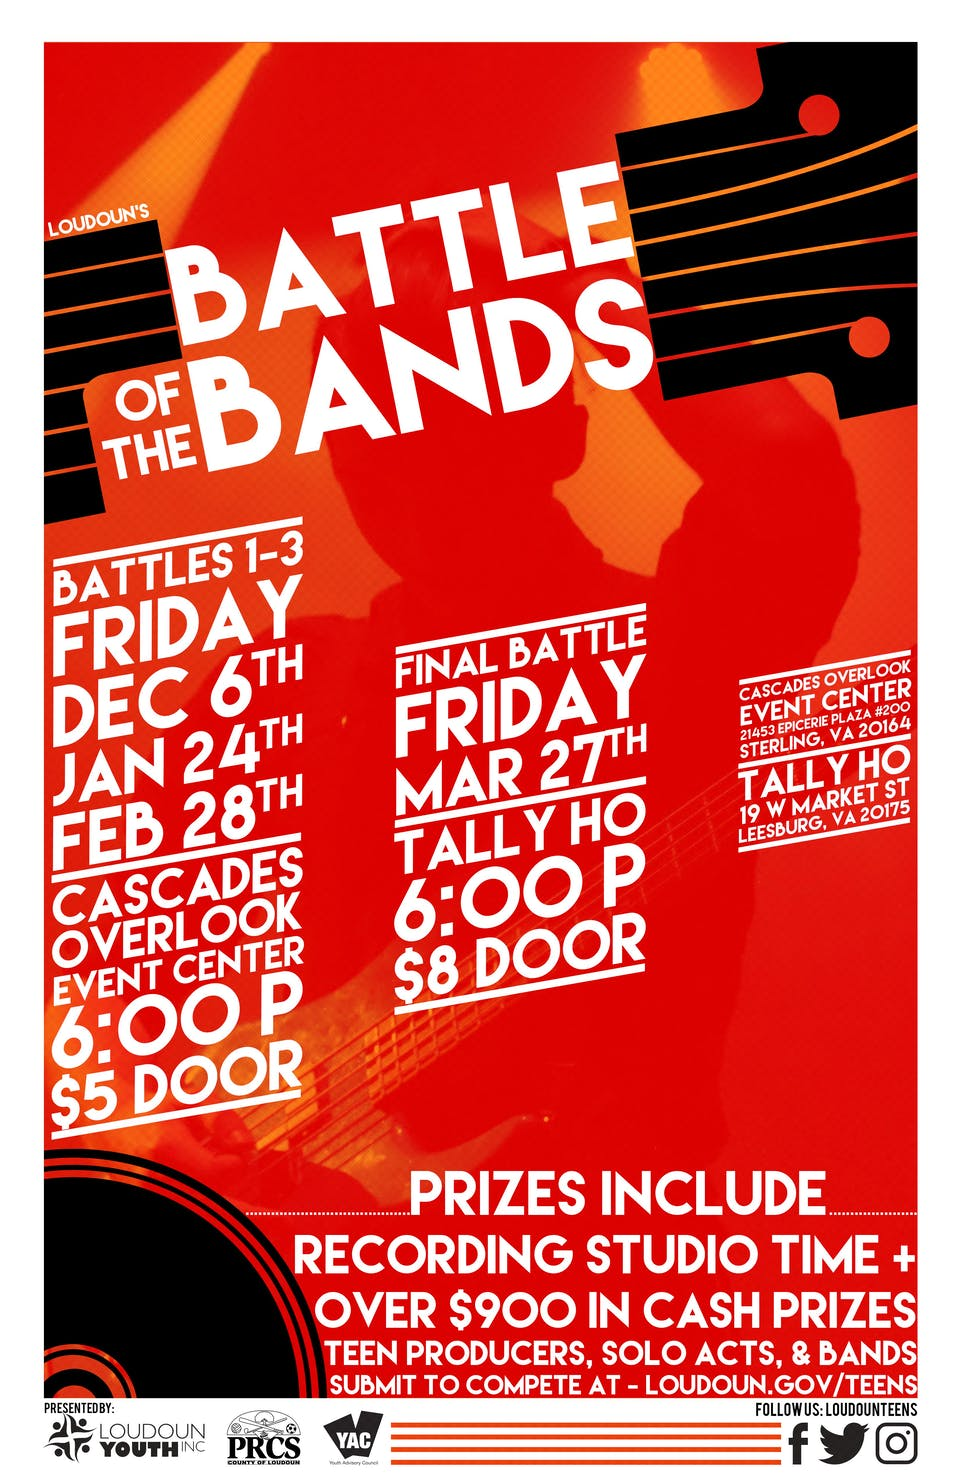 Loudoun Youthfest's Battle of the Bands - Final Battle!